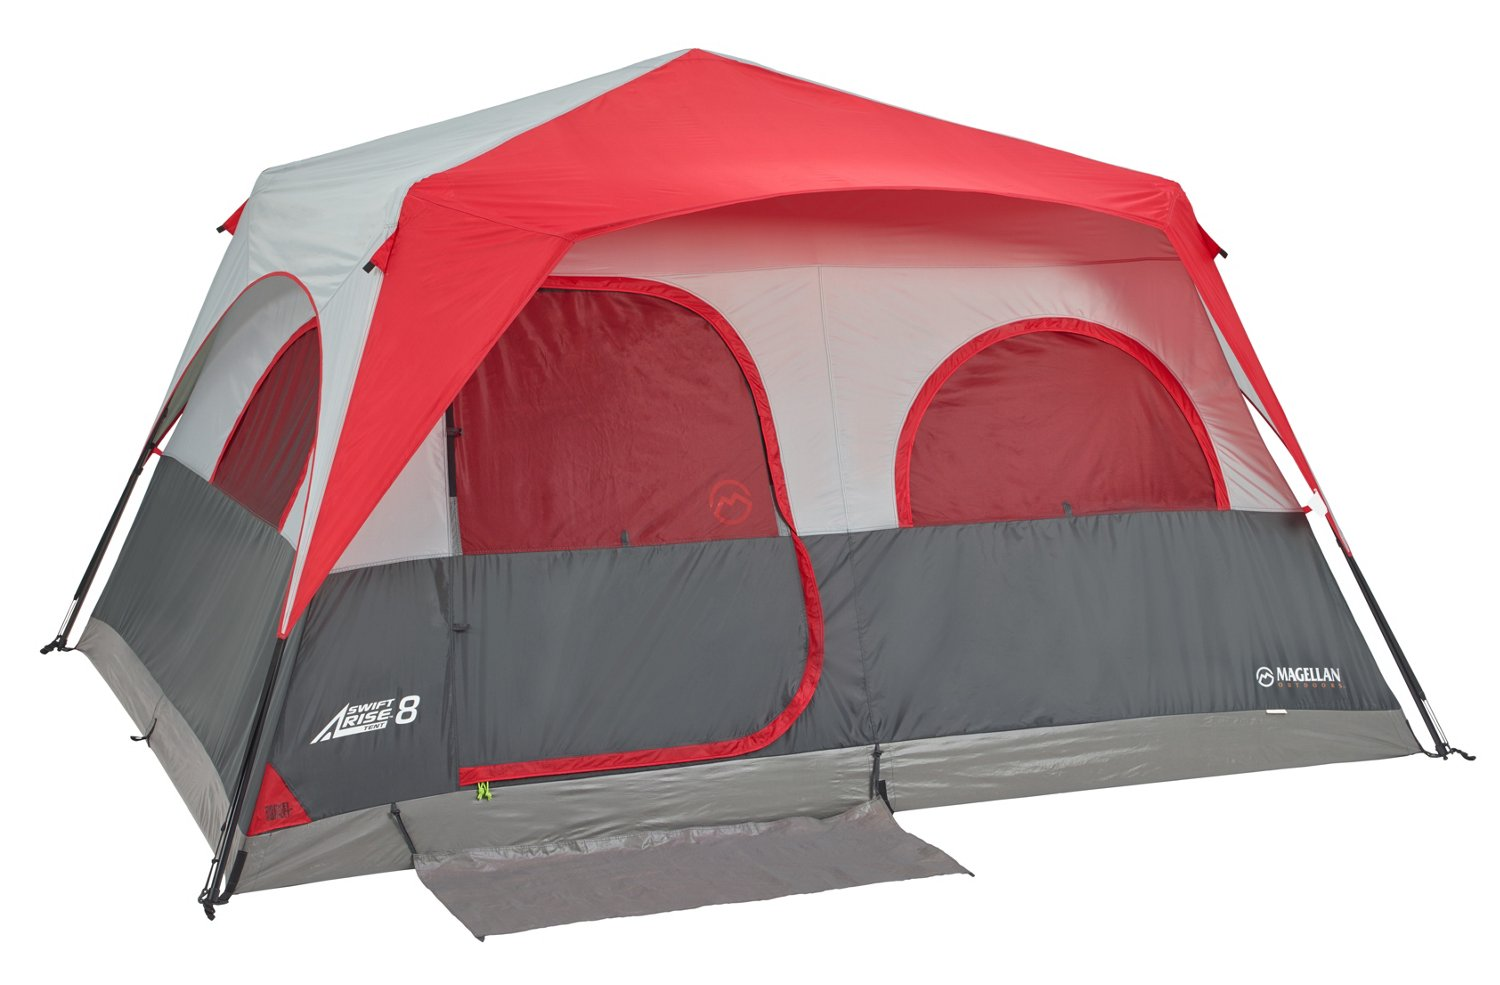 00befbbc8ab Display product reviews for Magellan Outdoors SwiftRise Instant 8 Person  Cabin Tent